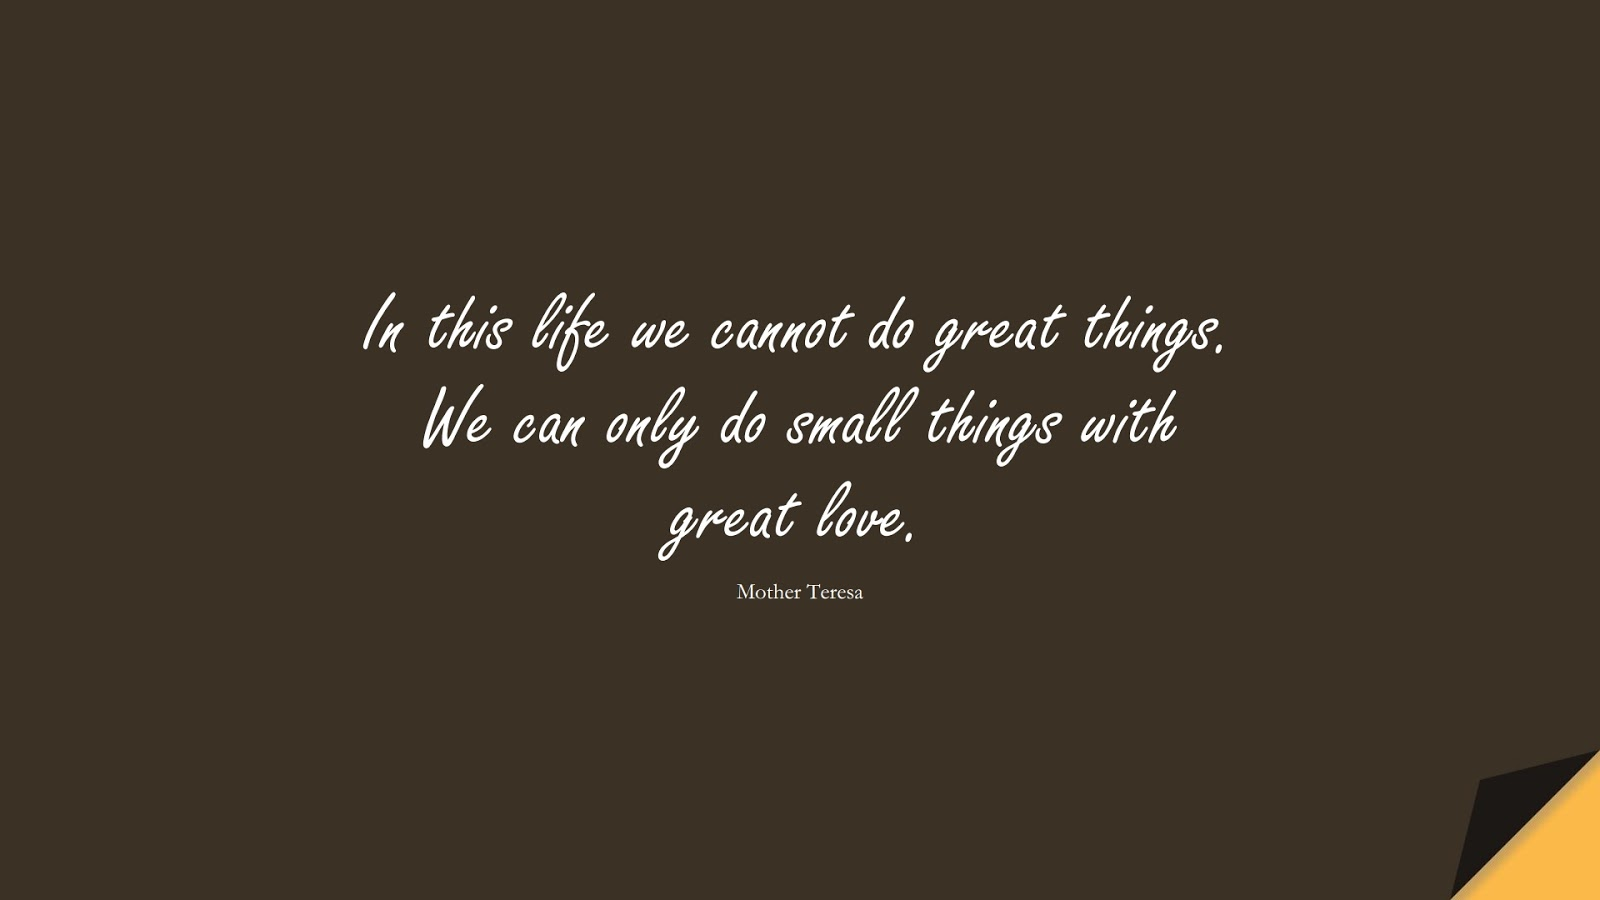 In this life we cannot do great things. We can only do small things with great love. (Mother Teresa);  #LifeQuotes